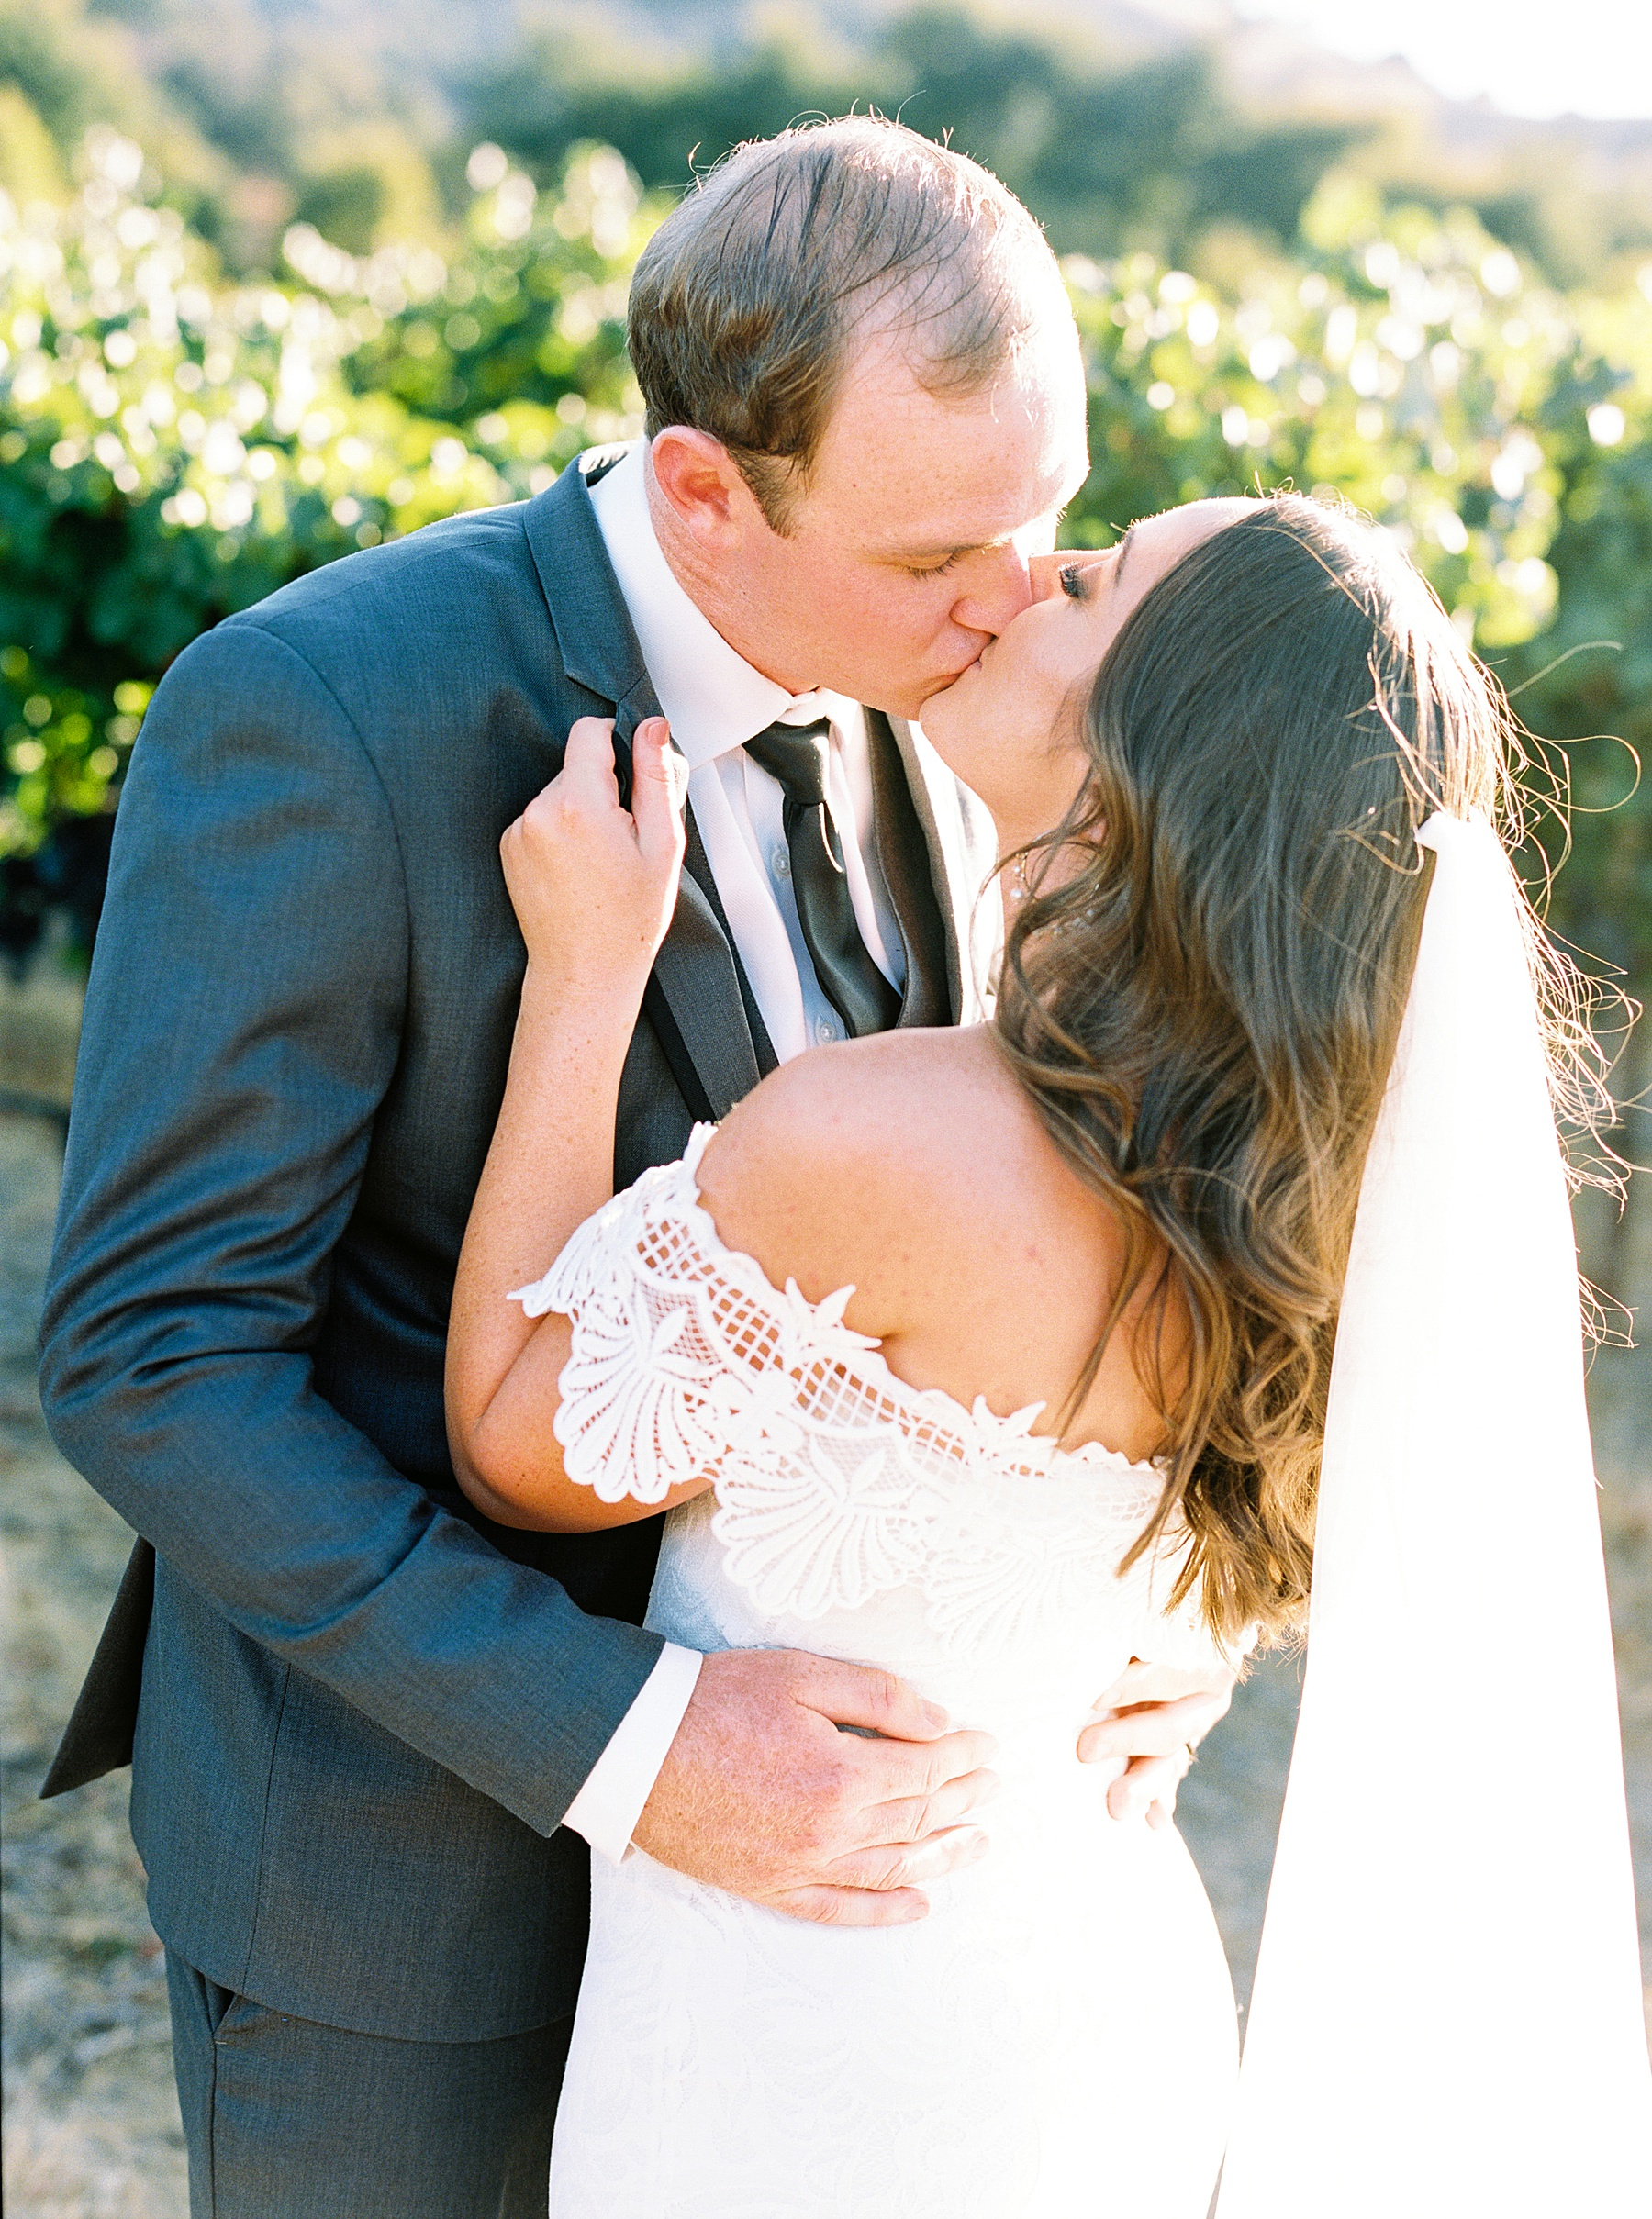 Wente Wedding with A Tropical Color Palette - Ashley & Mike - Featured on Inspired by This - Ashley Baumgartner_0036.jpg